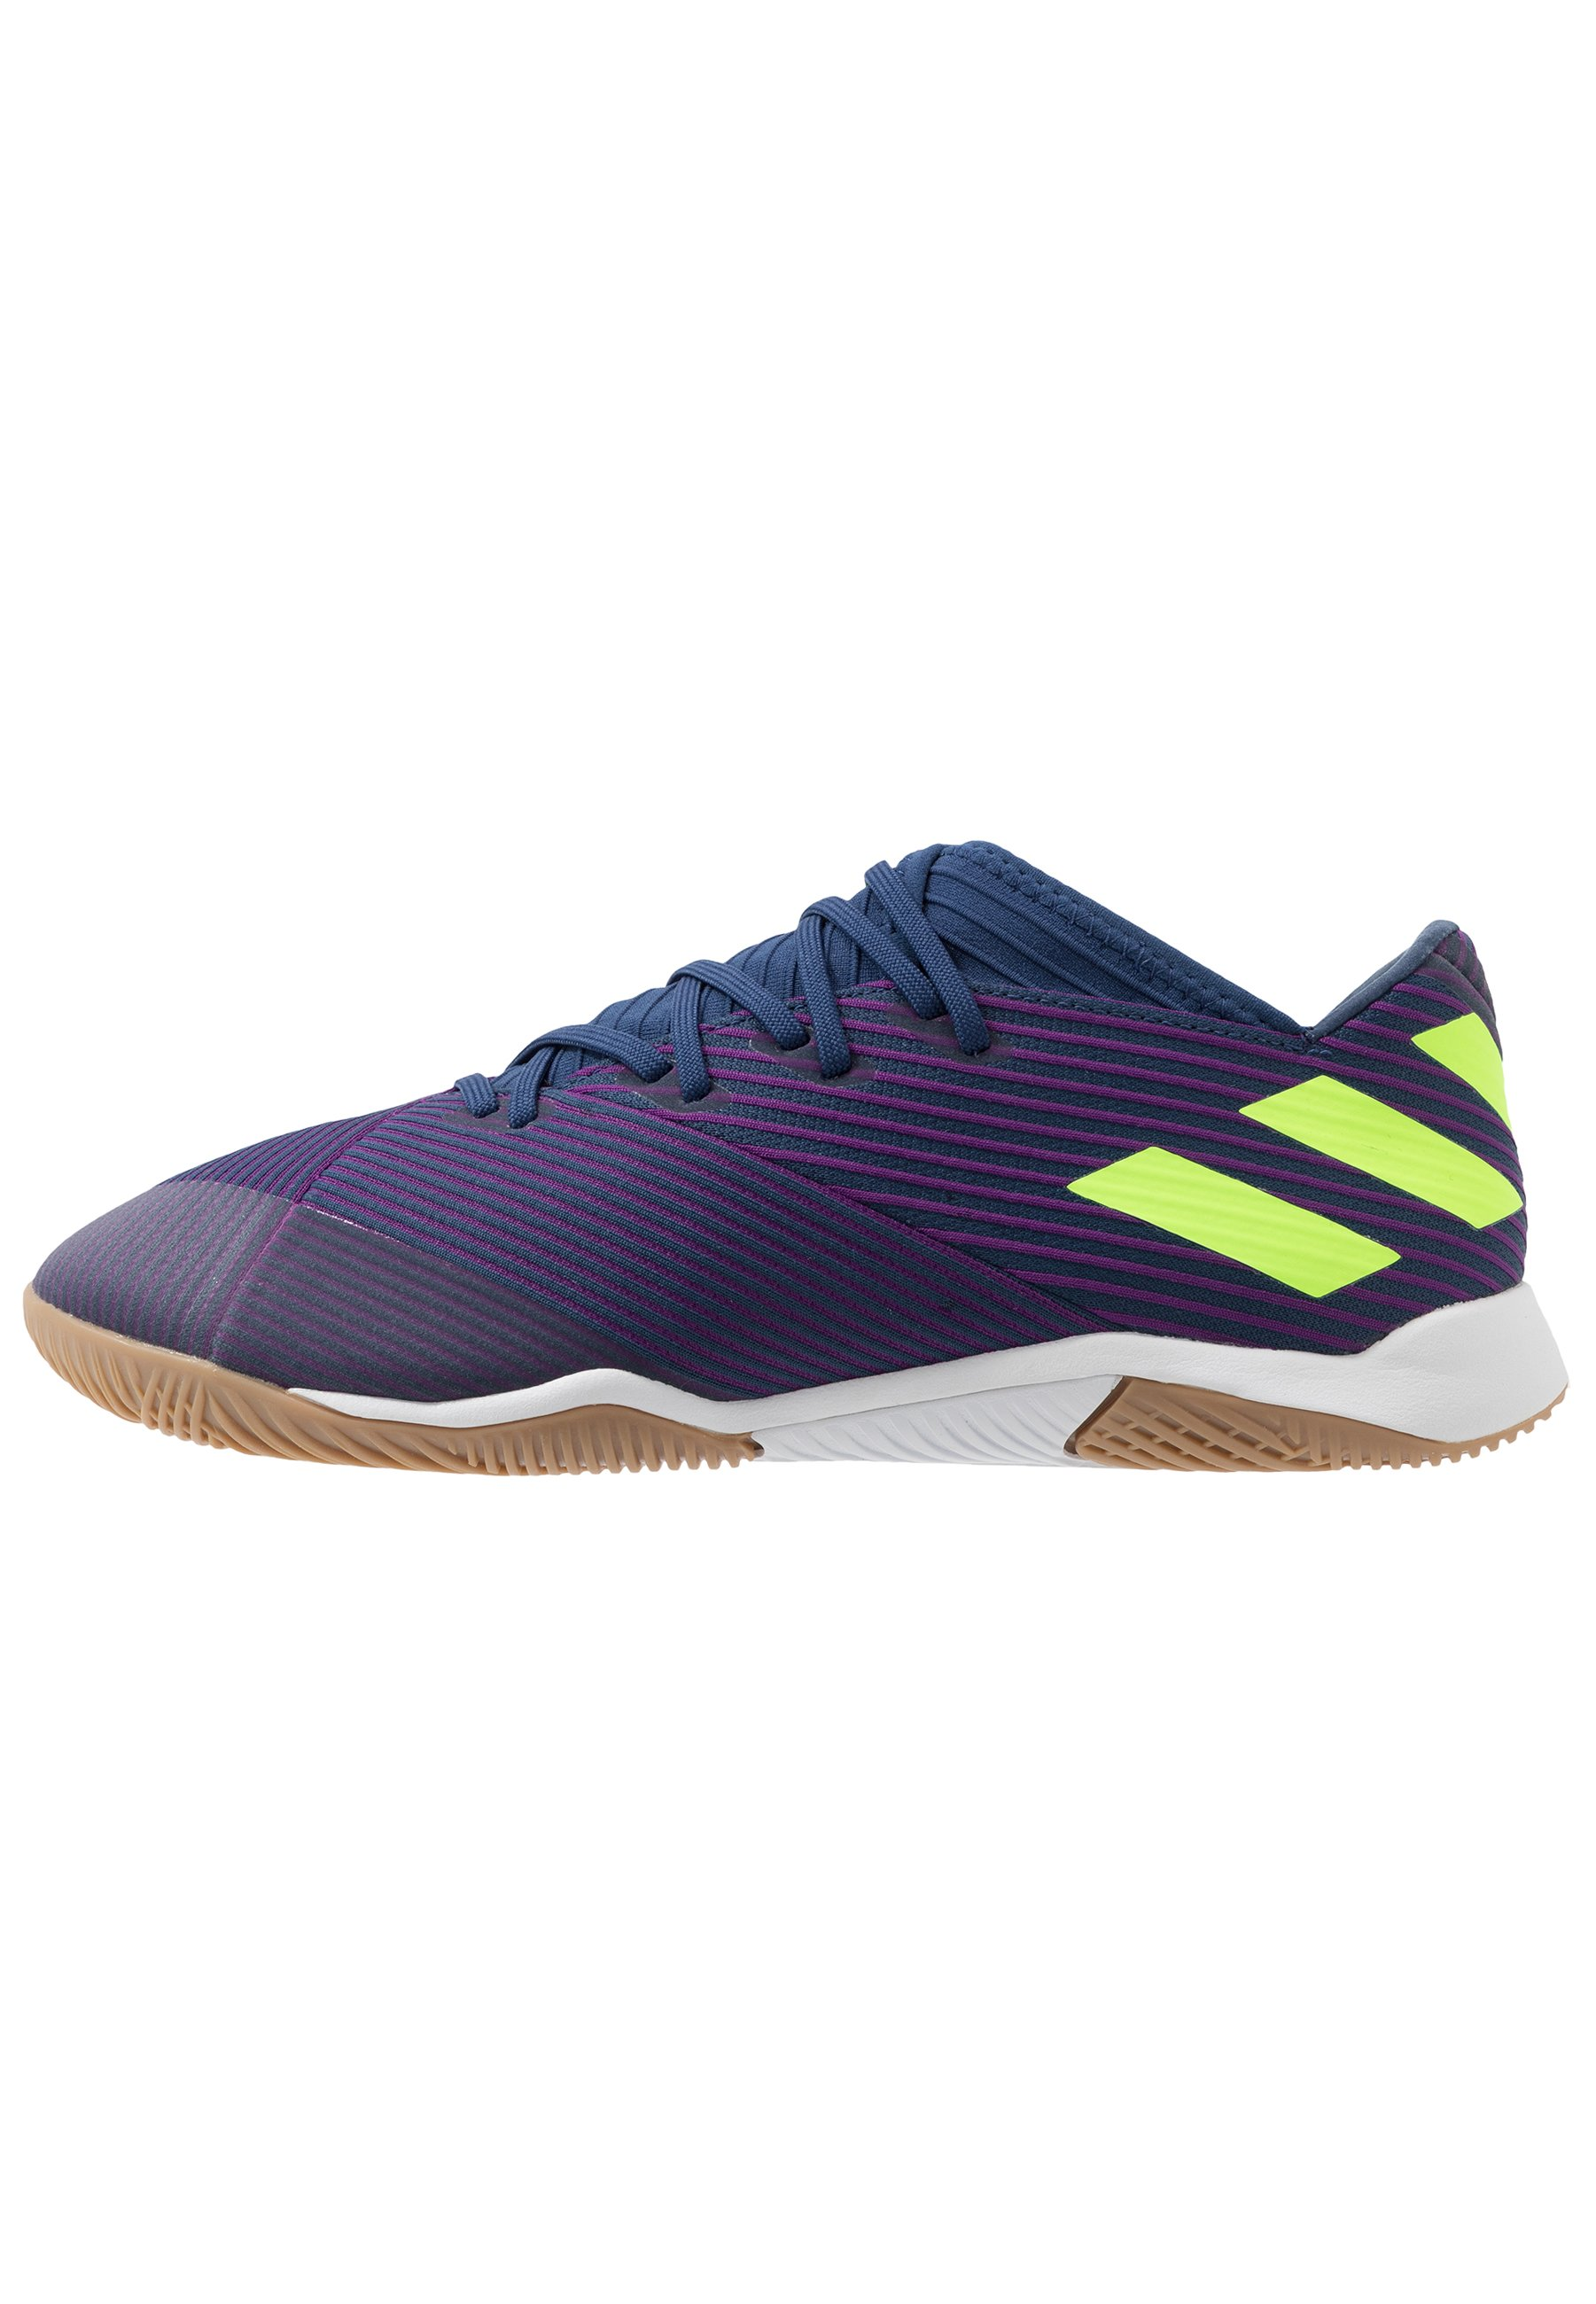 Adidas Performance Nemeziz Messi 19.3 In - Scarpe Da Calcetto Tech Indigo/signal Green/glow Purple Y33LT